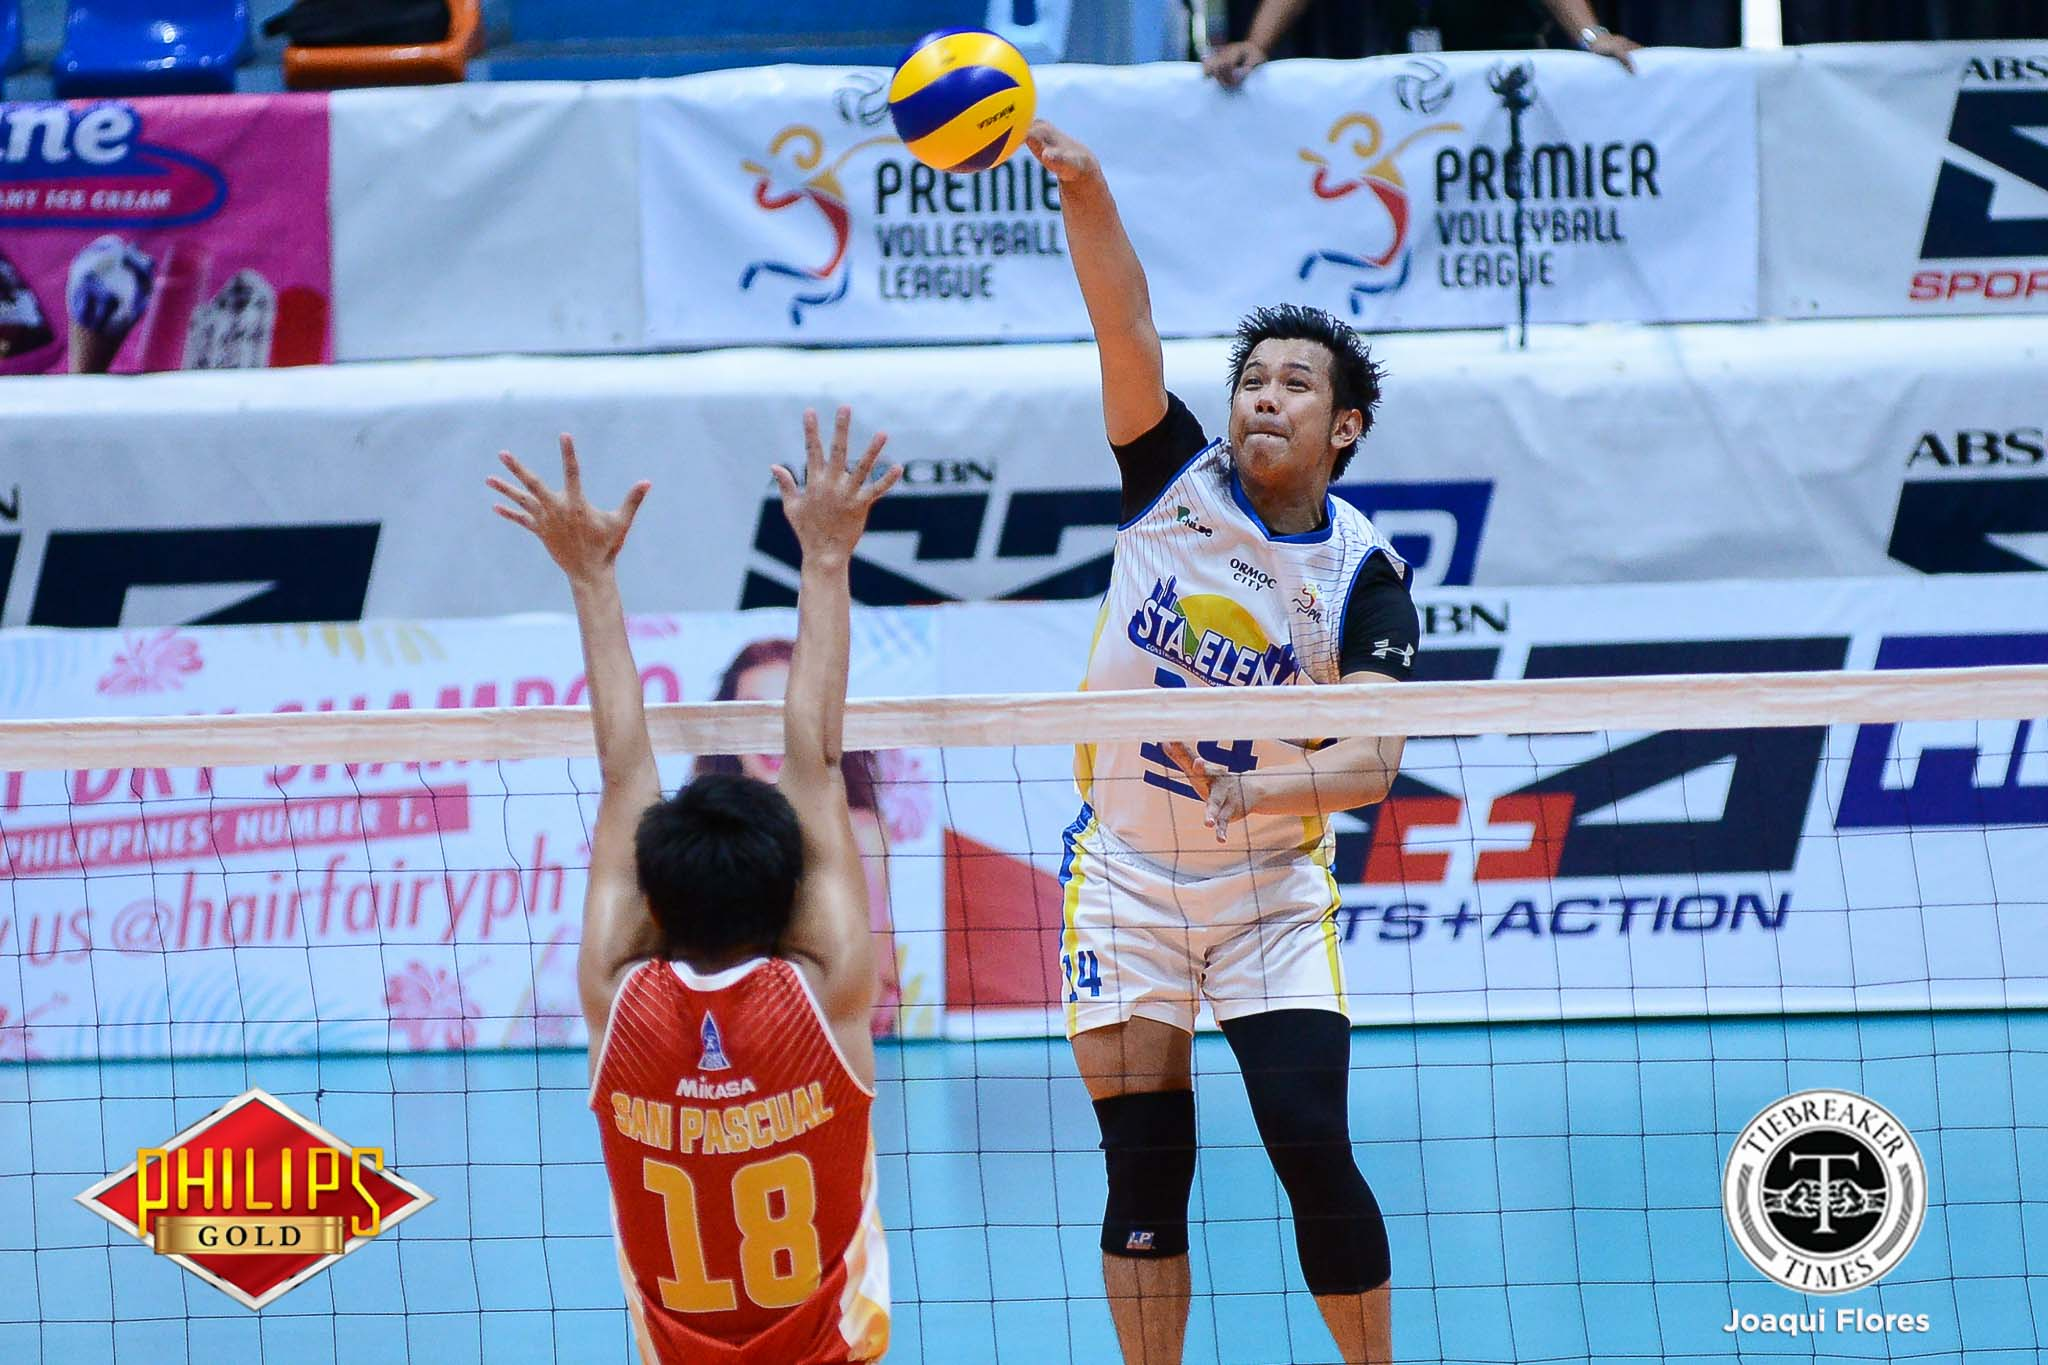 Tiebreaker Times Sta. Elena fends off pressure, Cafe Lupe to force playoff against Army News PVL Volleyball  Sta. Elena Wrecking Balls Rod Palmero Nico Ramirez John Millete Isaah Arda Cafe Lupe Sunrisers Berlin Paglinawan Arnold Laniog Ajian Dy 2017 PVL Season 2017 PVL Men's Open Conference